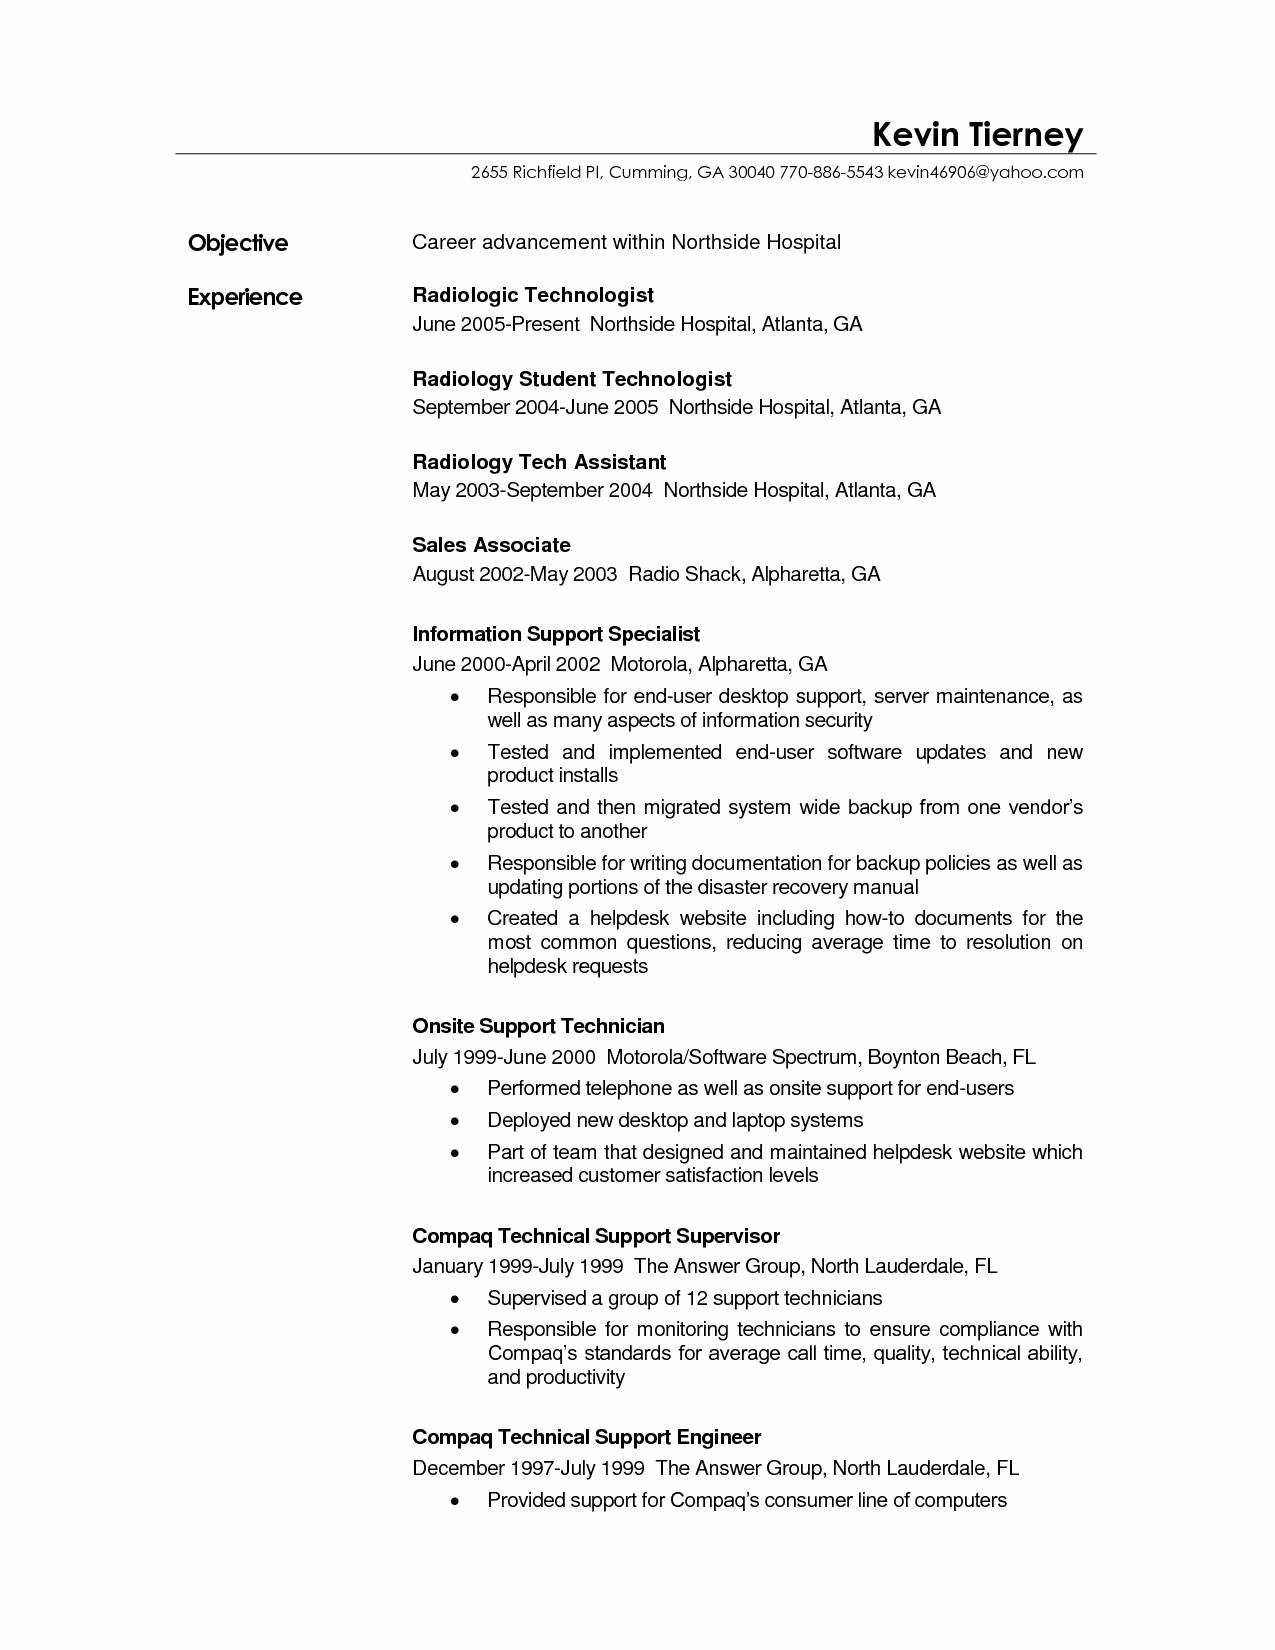 surgical technician resume template example-37 Fresh Surgical Tech Resume Sample 5-e